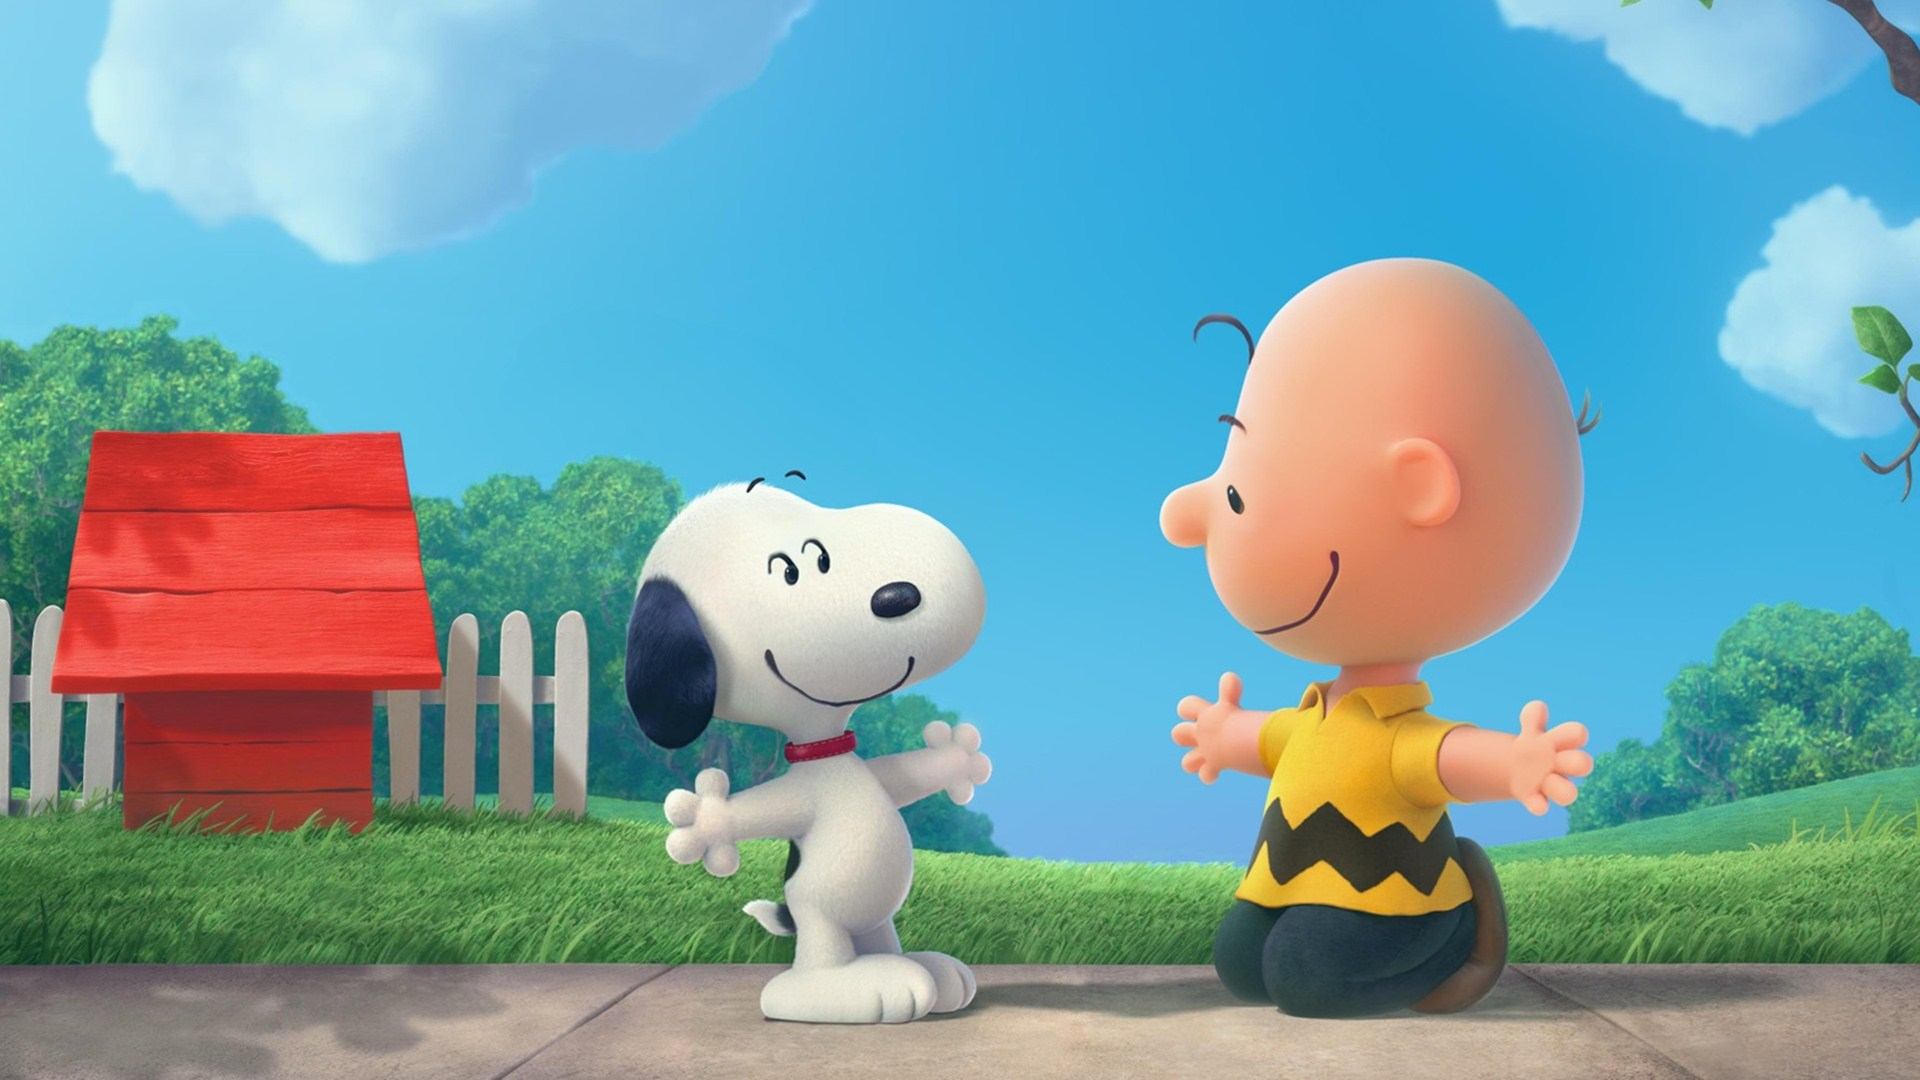 Download Snoopy And Charlie Brown The Peanuts Cartoon HD Wallpaper 1920x1080